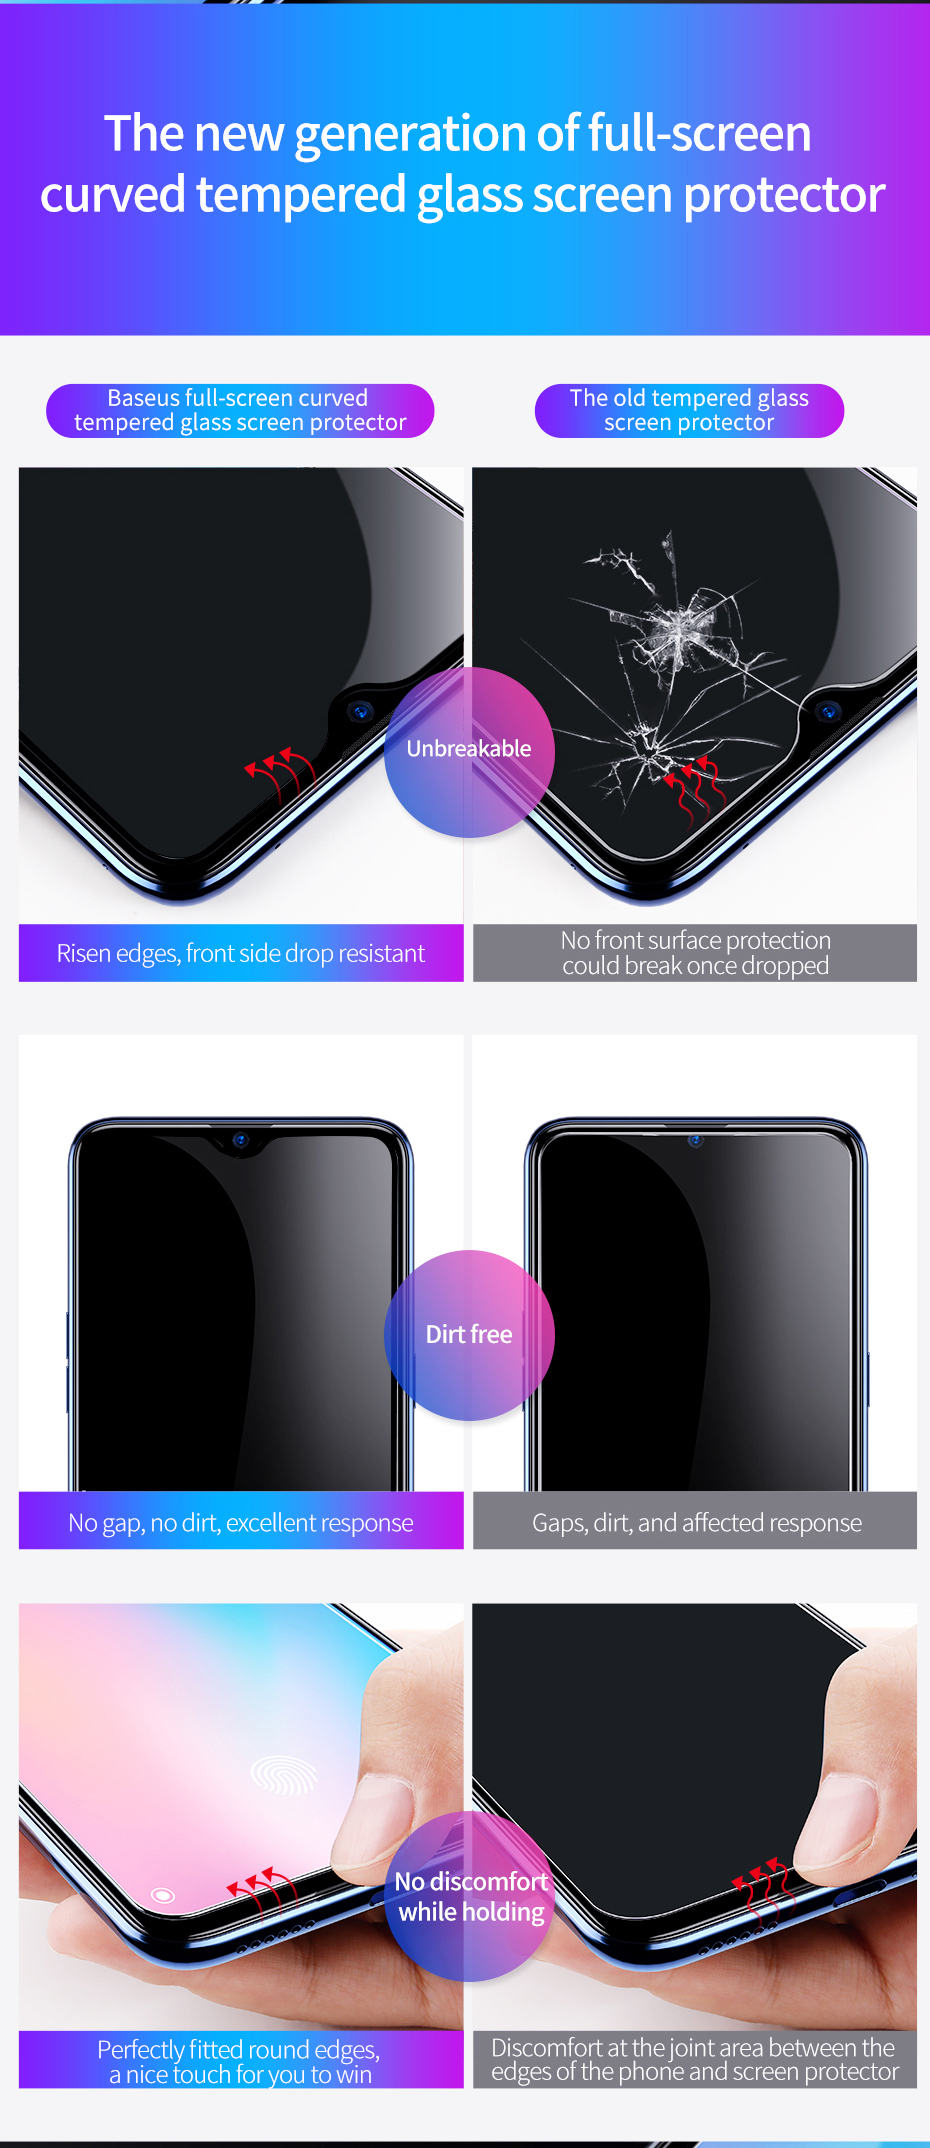 Baseus Xiaomi Mi 9 0.3mm Anti-bluelight Full Cover Curve Black Tempered Glass_5.jpg